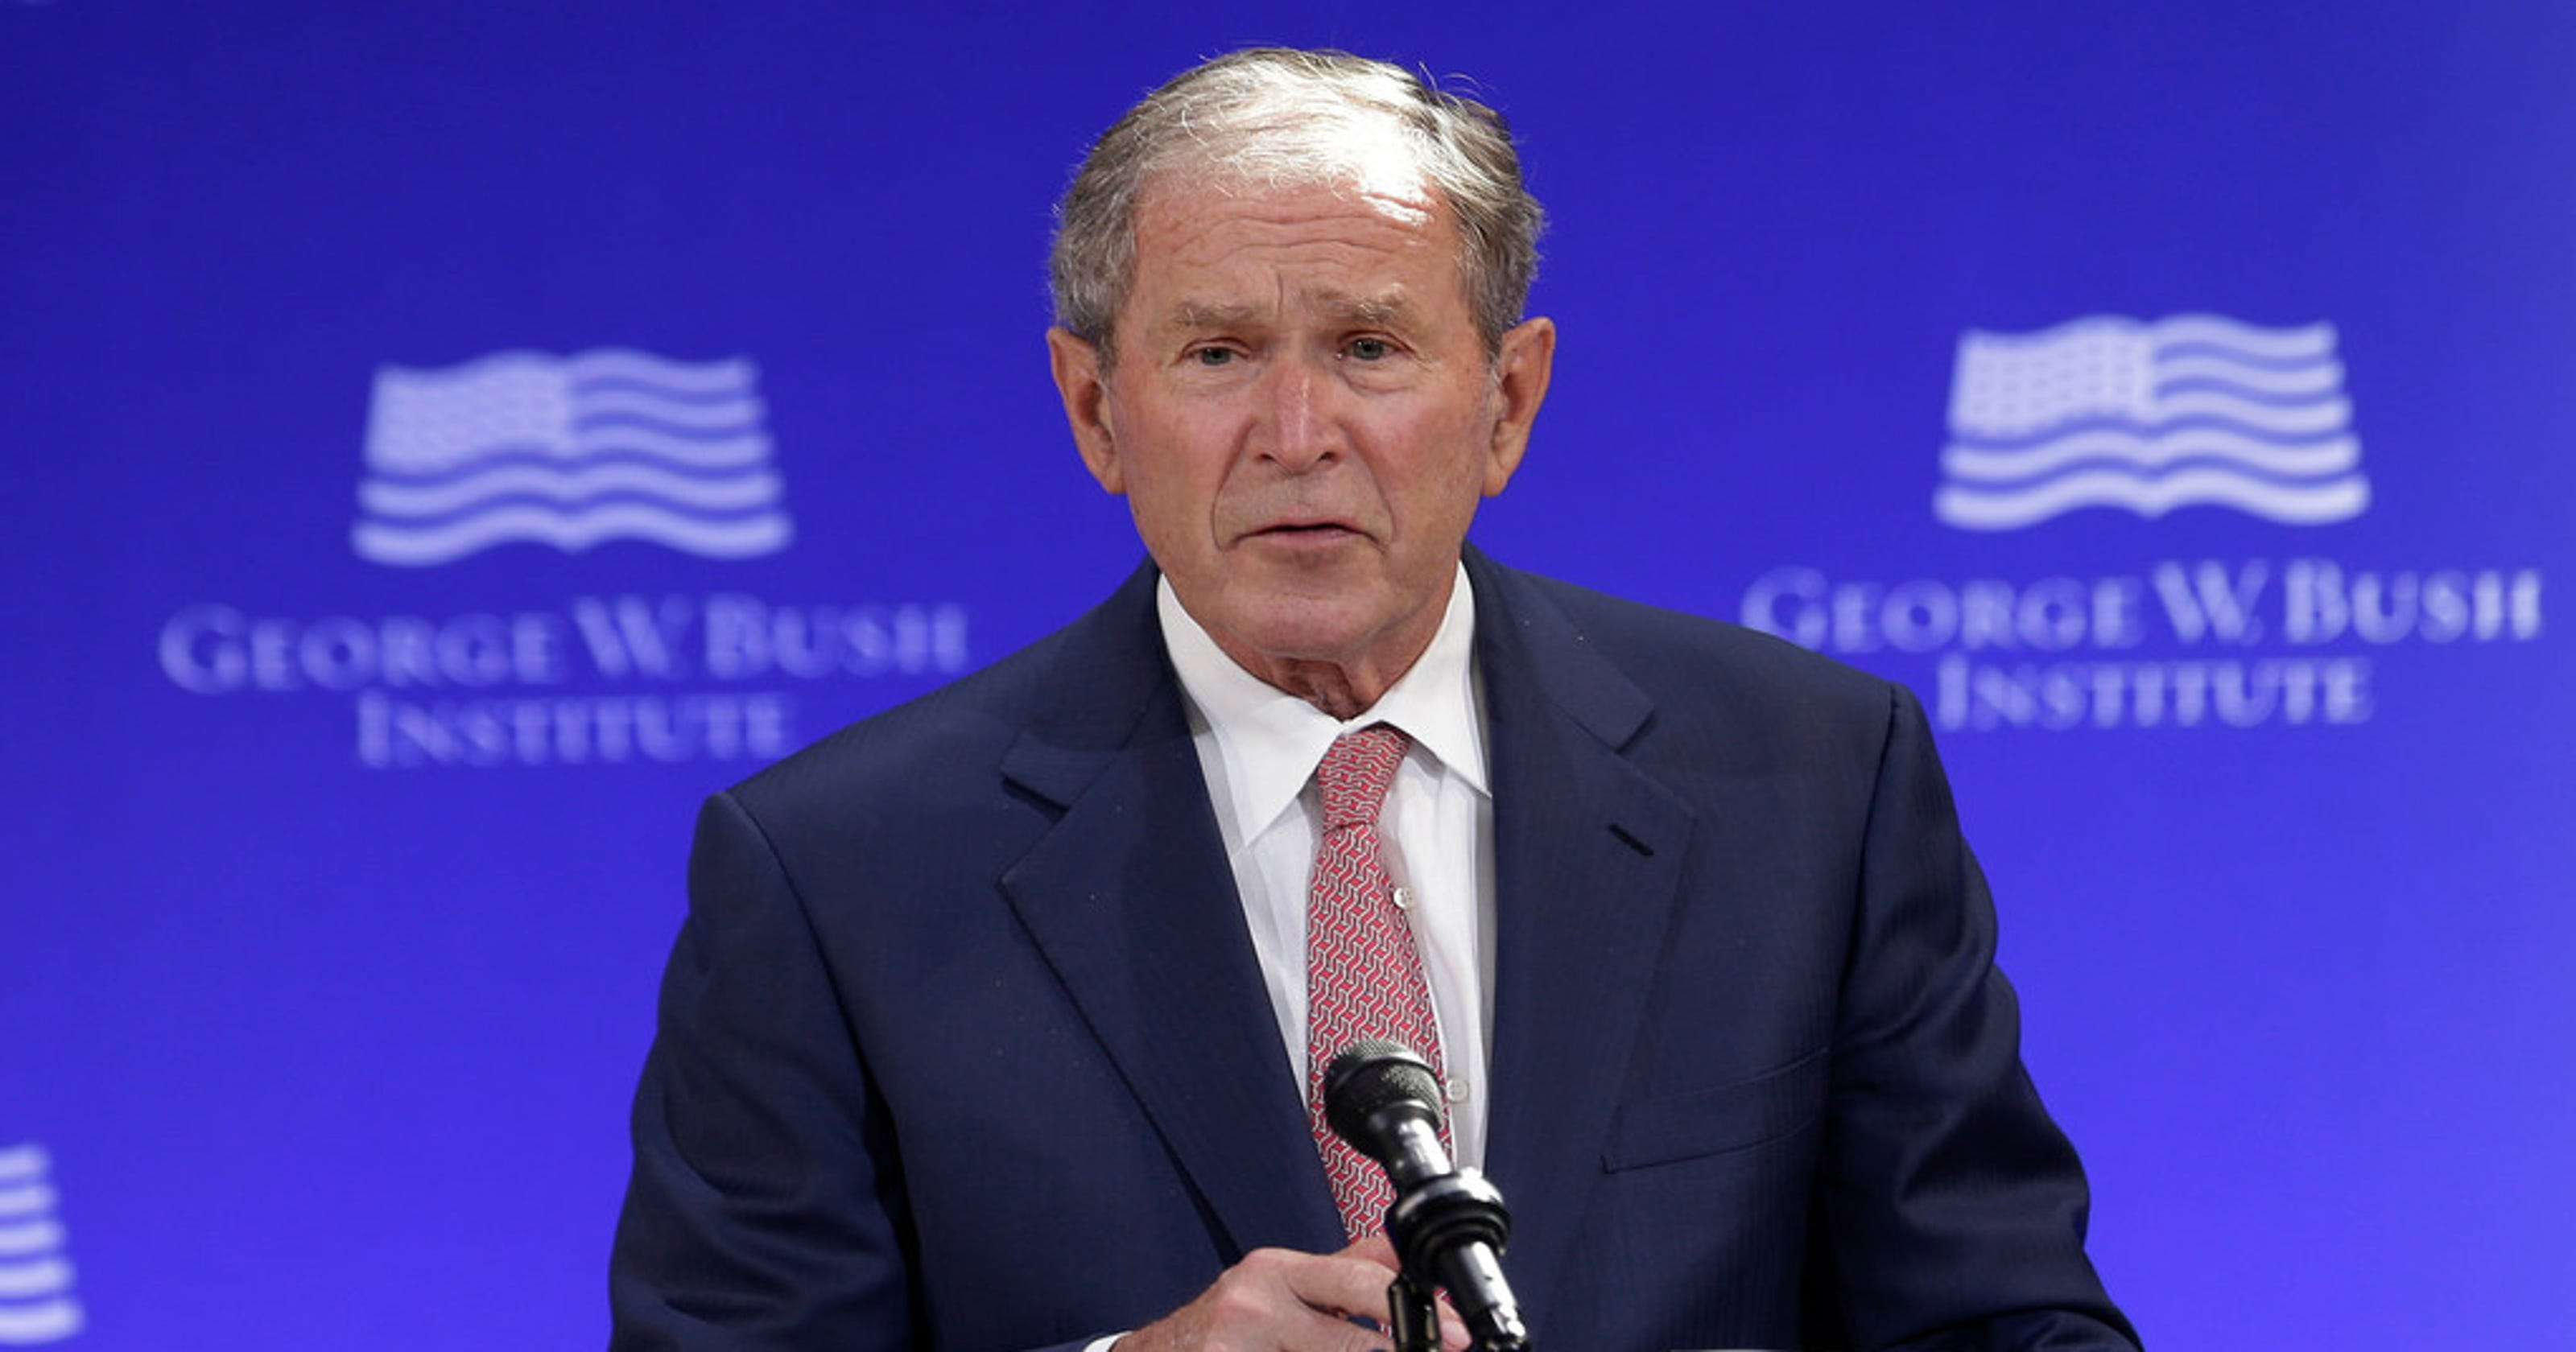 President George W. Bush delivers pizza to Secret Service detail amid government shutdown